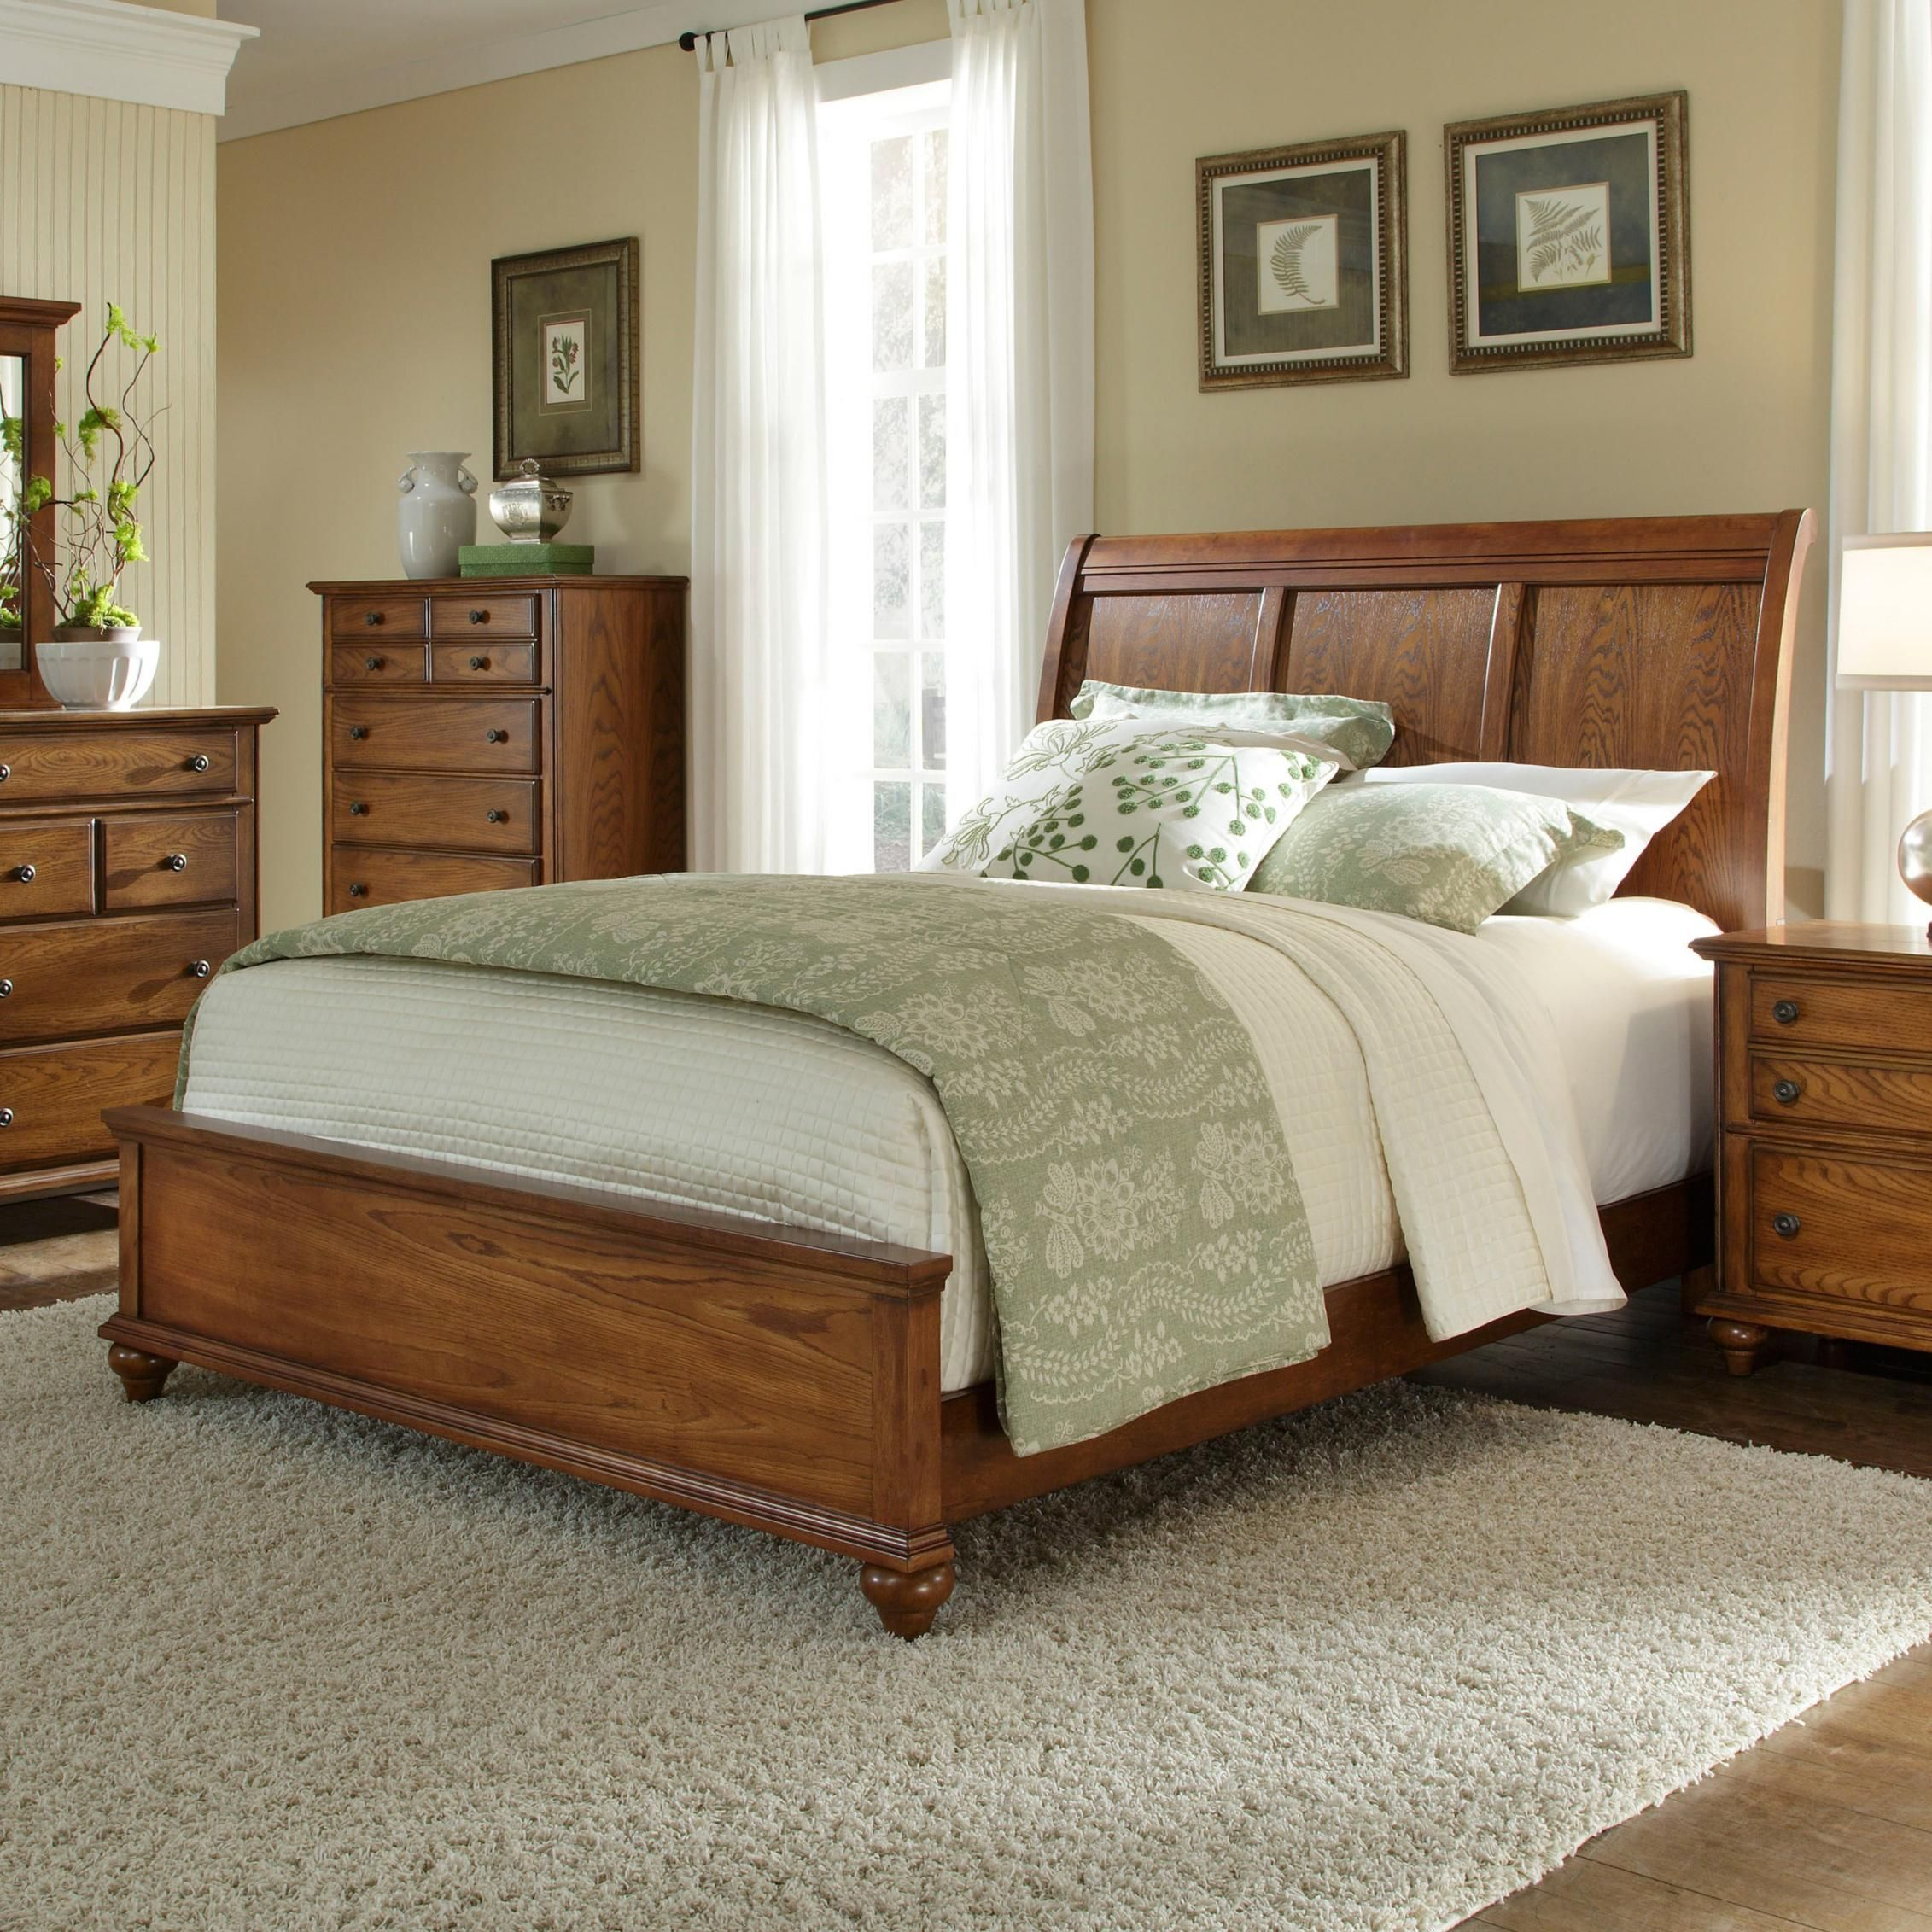 Broyhill Bedroom Furniture: Hayden Place King Bed With Sleigh Headboard By Broyhill